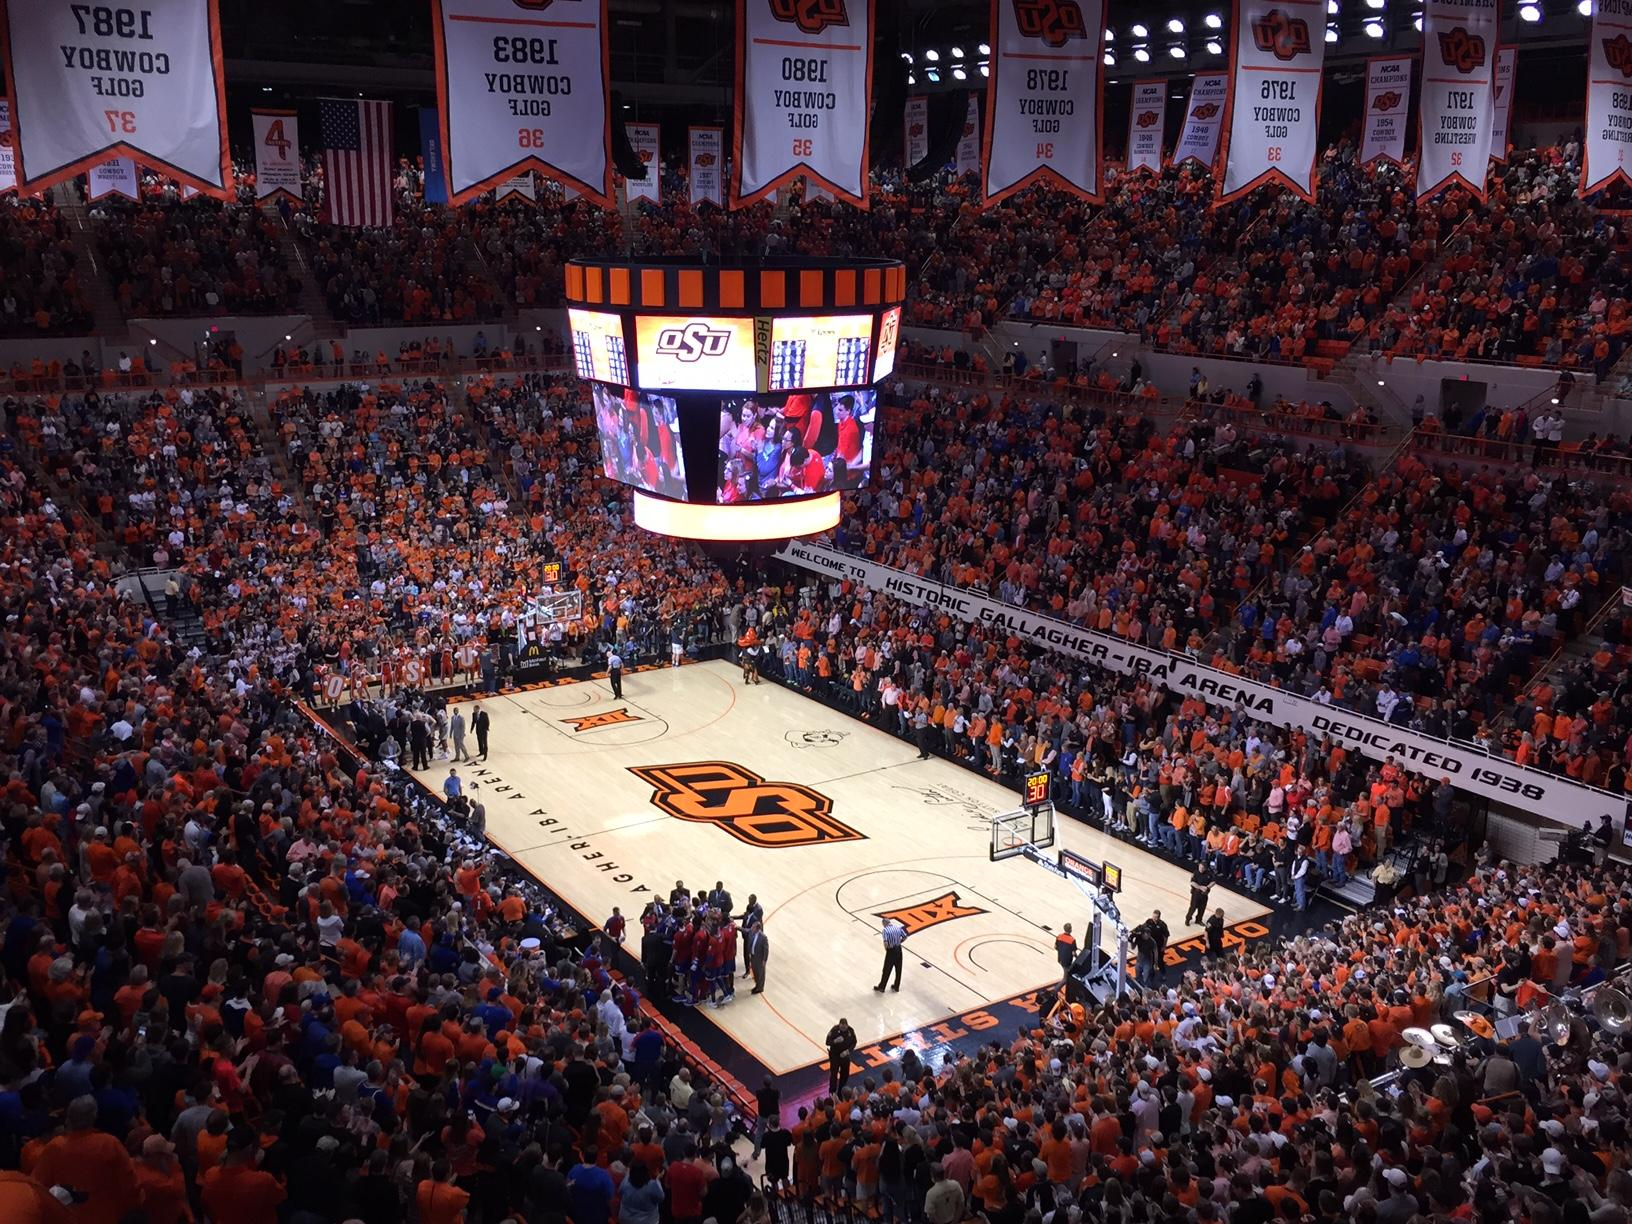 Gallagher-Iba Arena Section 313 Row 9 Seat 11